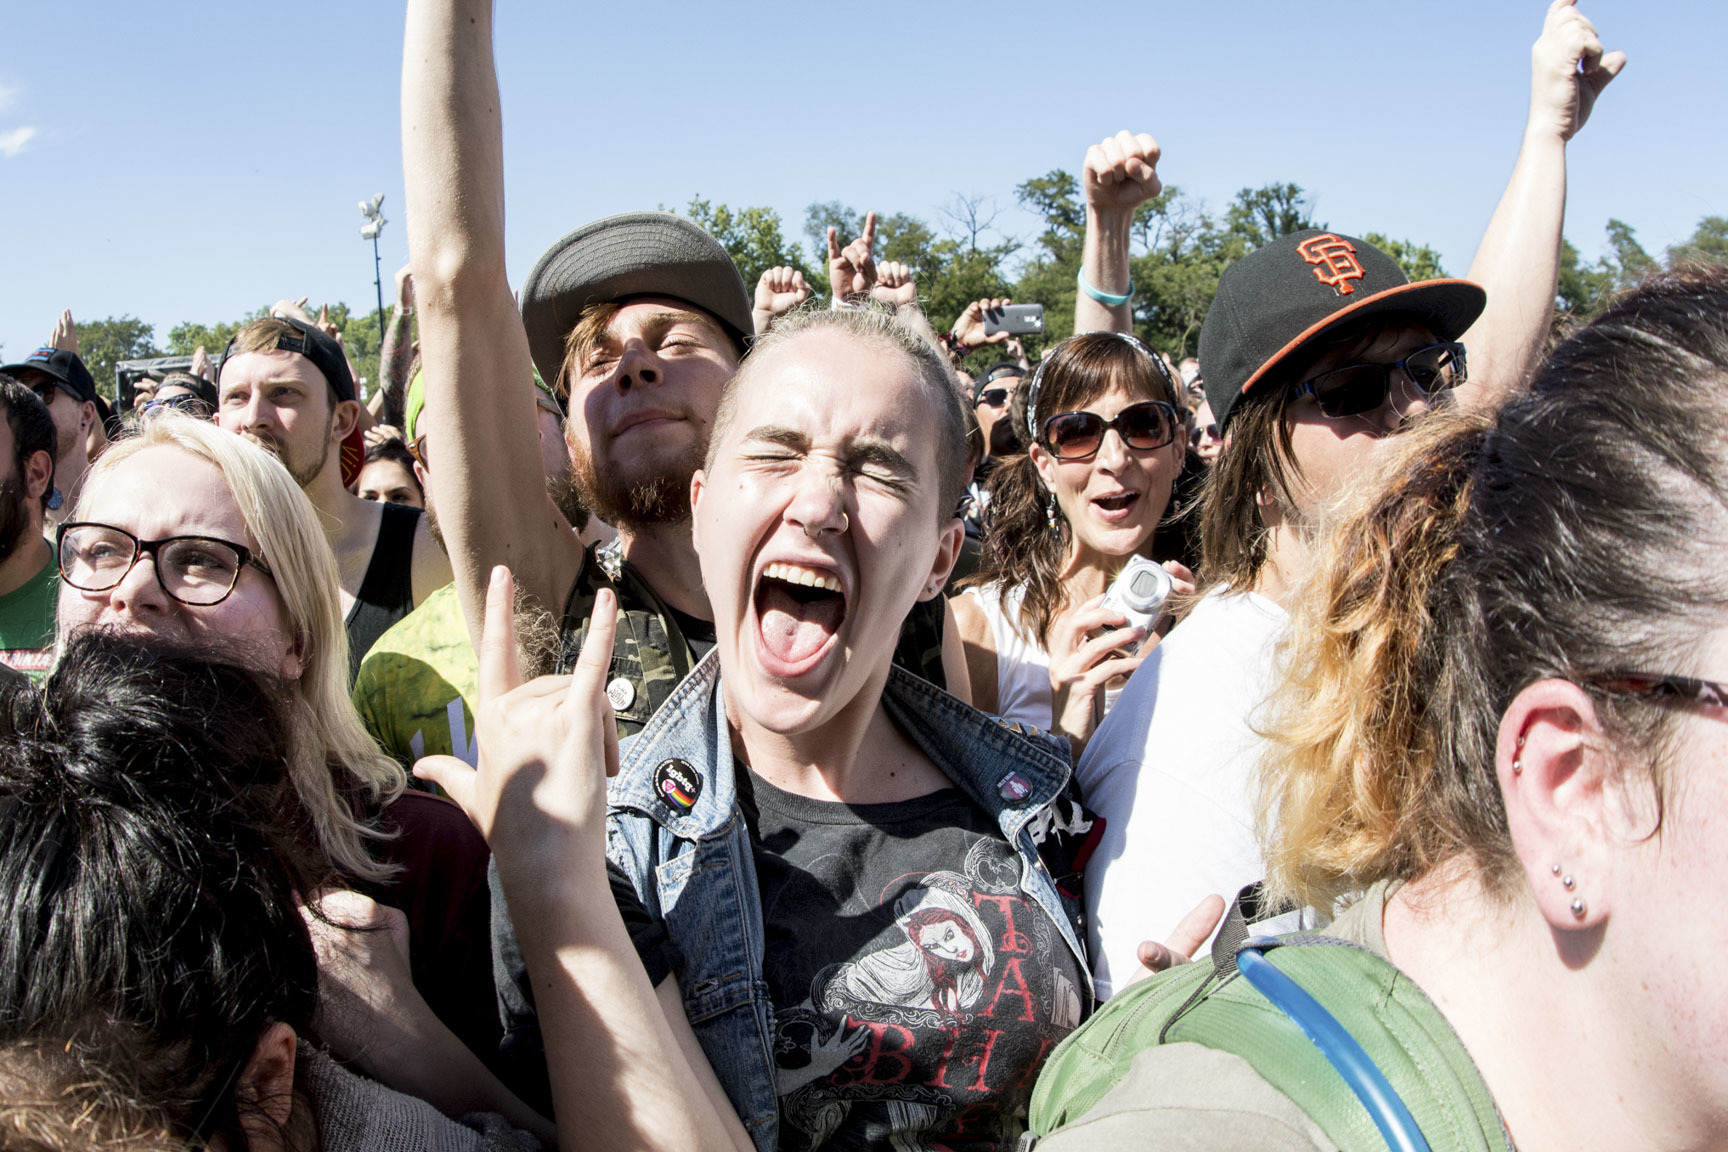 Time to locate your favorite acts on Riot Fest's daily lineup